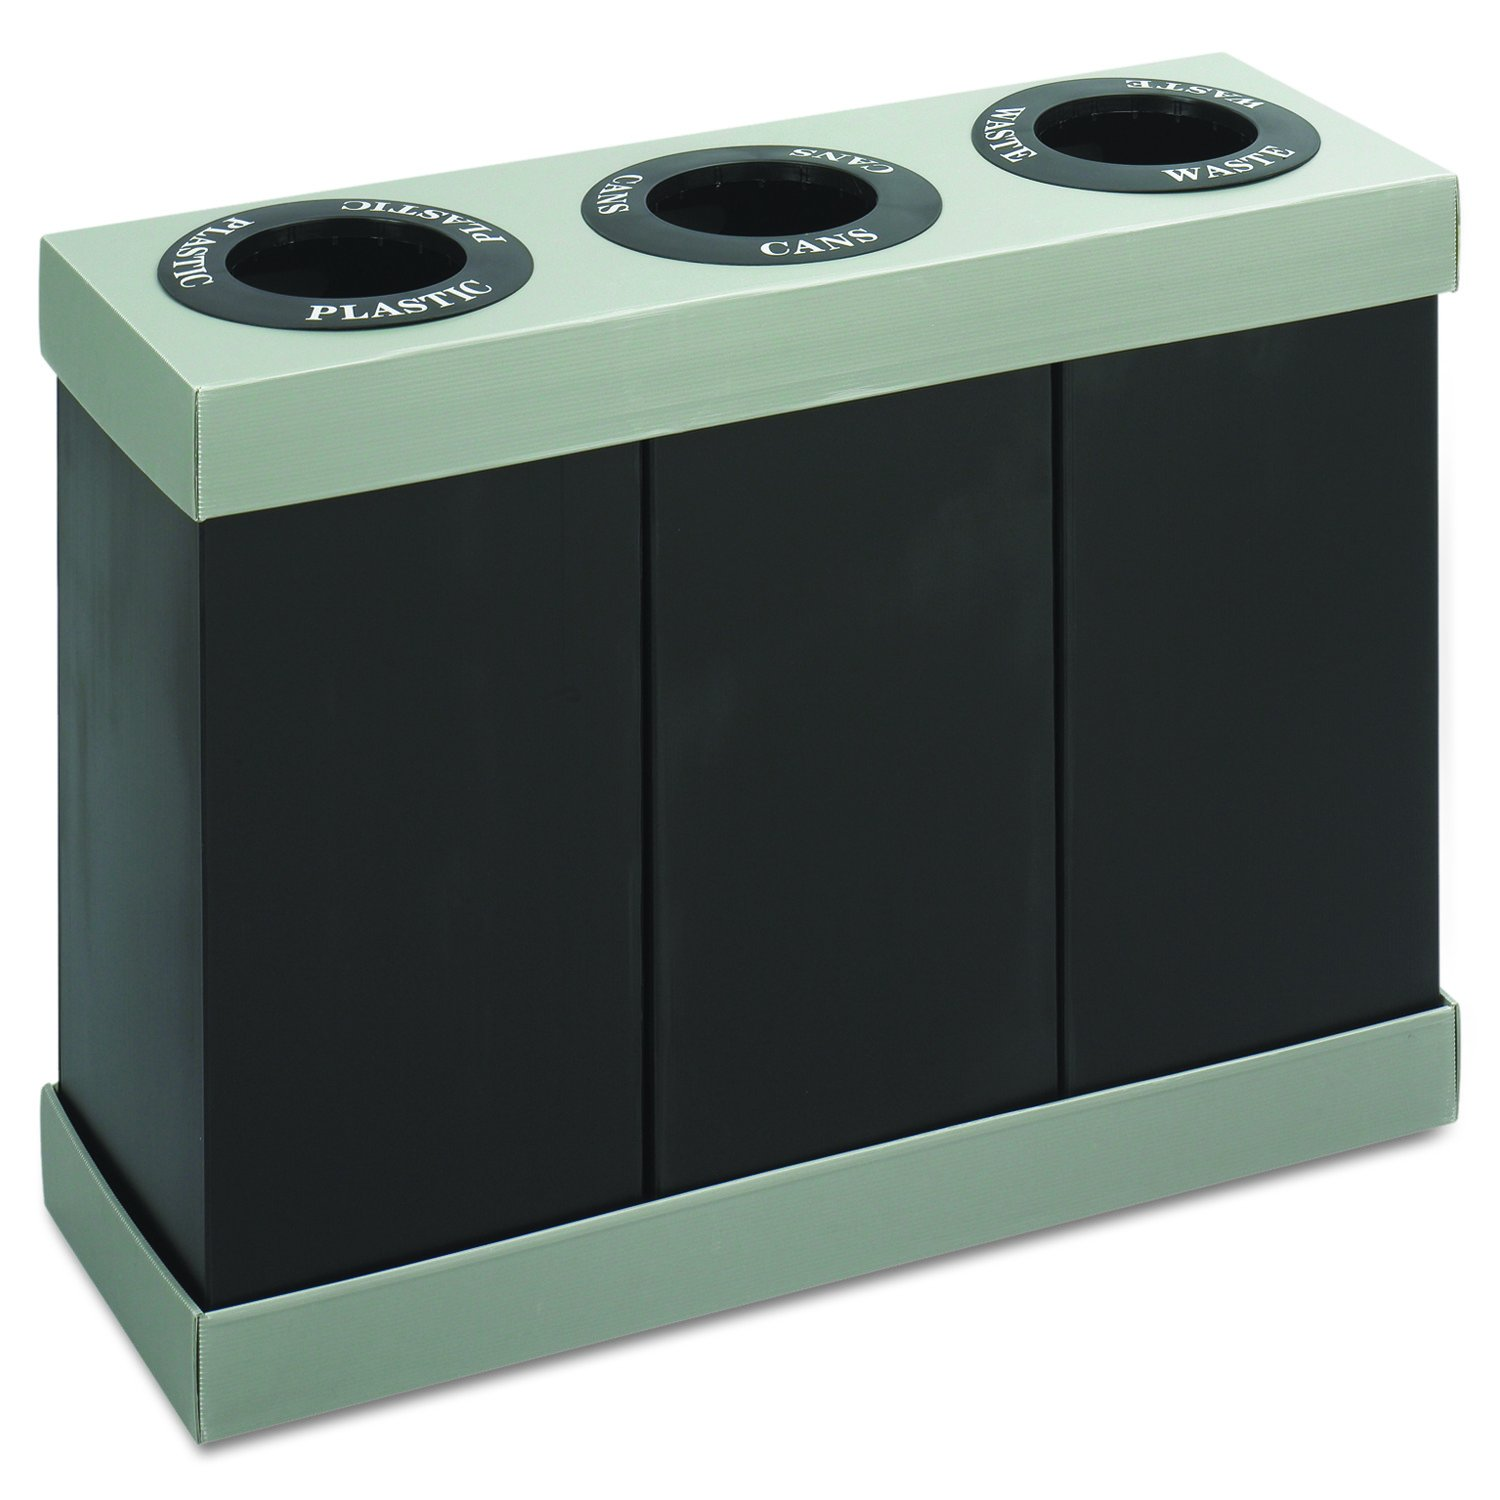 Safco Products 9798BL At-Your-Disposal Waste Recycling Center, Three 28-Gallon Bins, Black